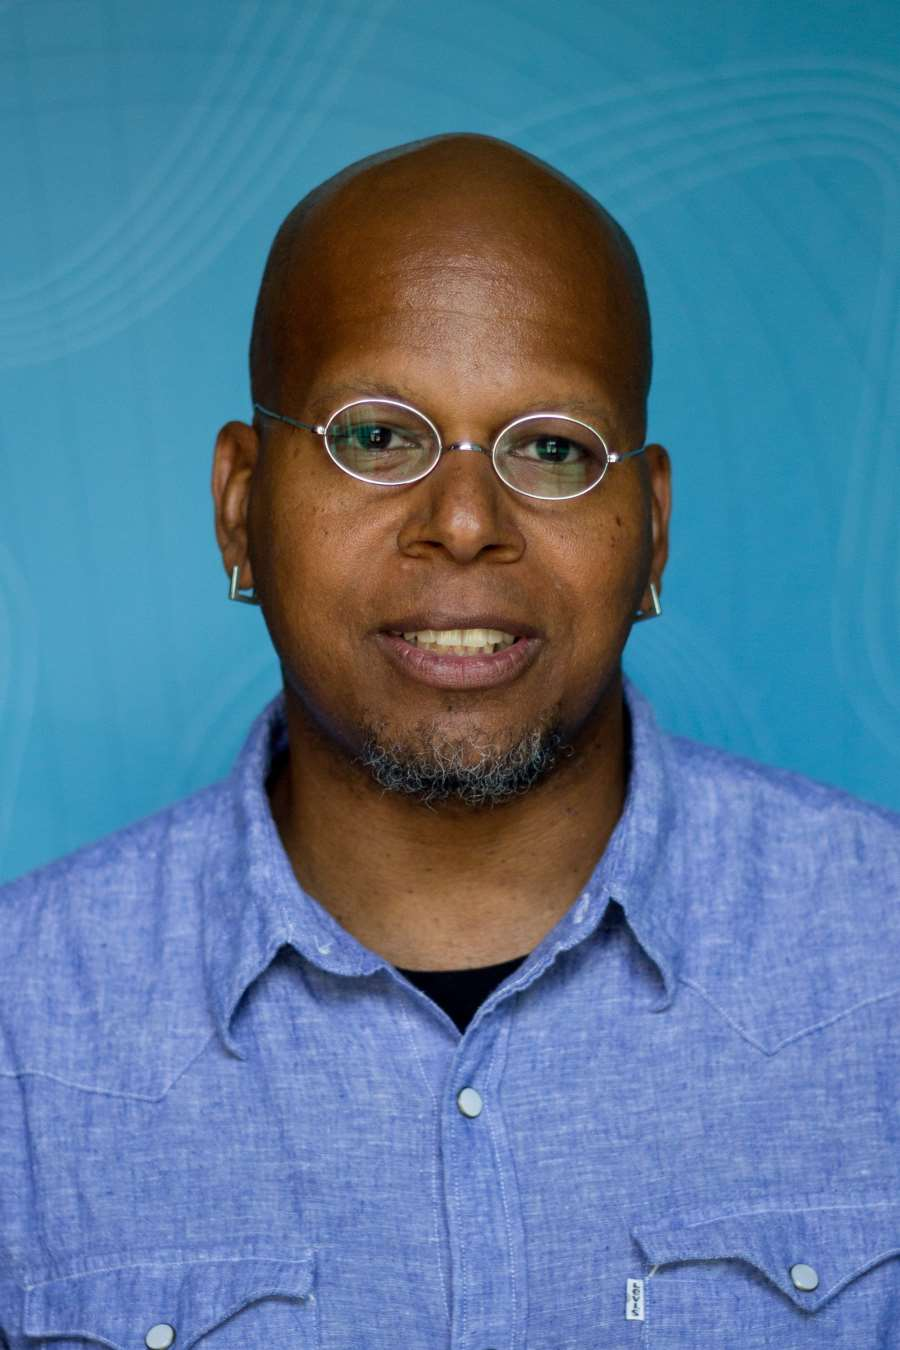 Christian Davenport Elected to the American Academy of Arts & Sciences